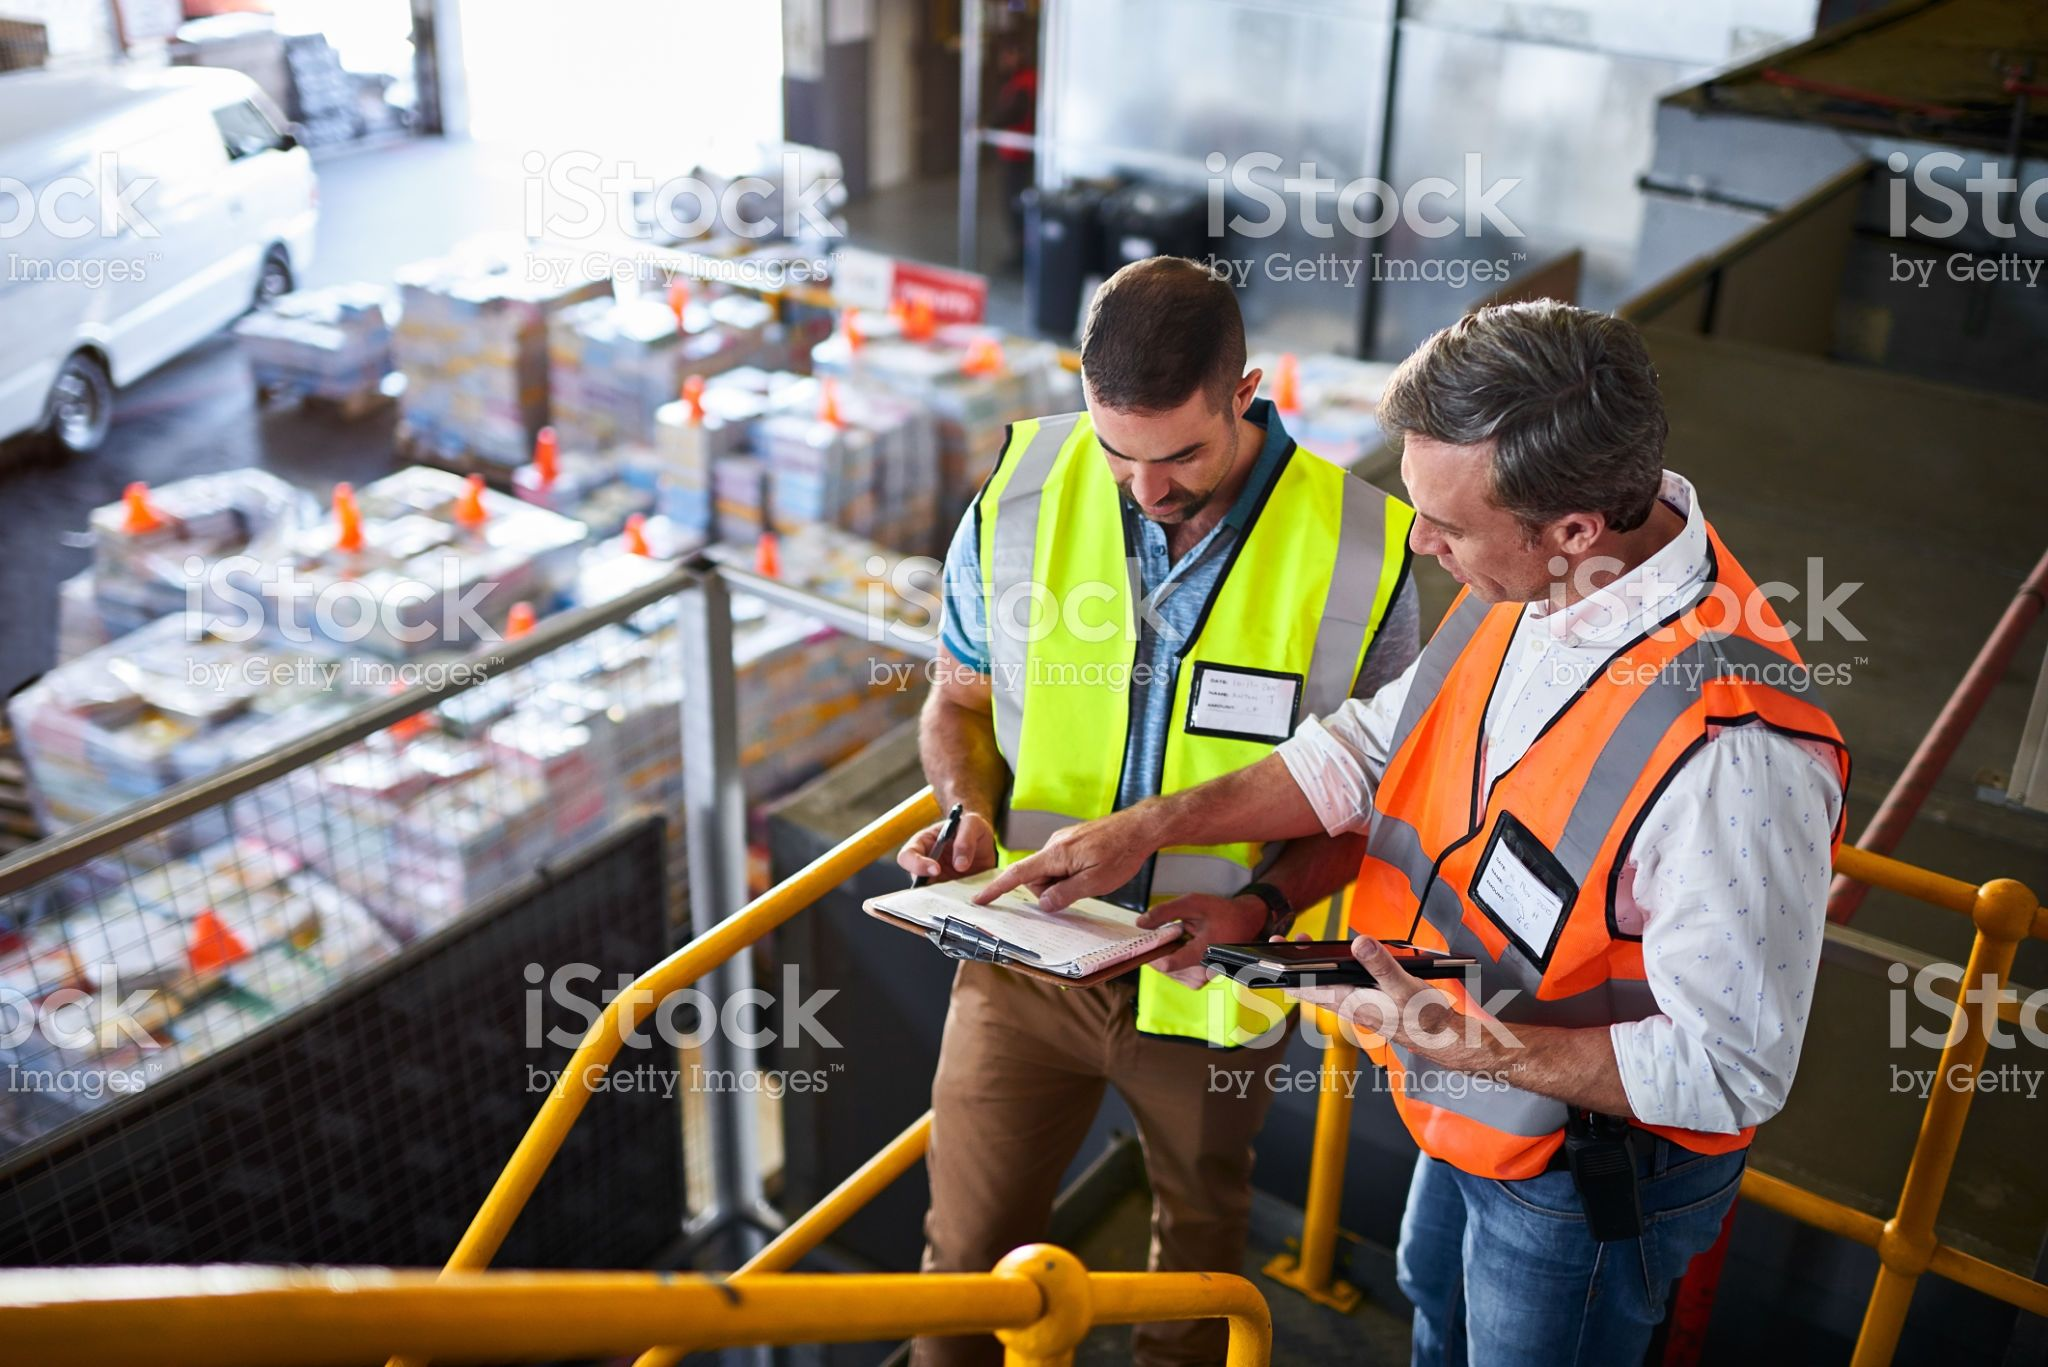 Shot Of Two Warehouse Workers Standing On Stairs Using A Digital